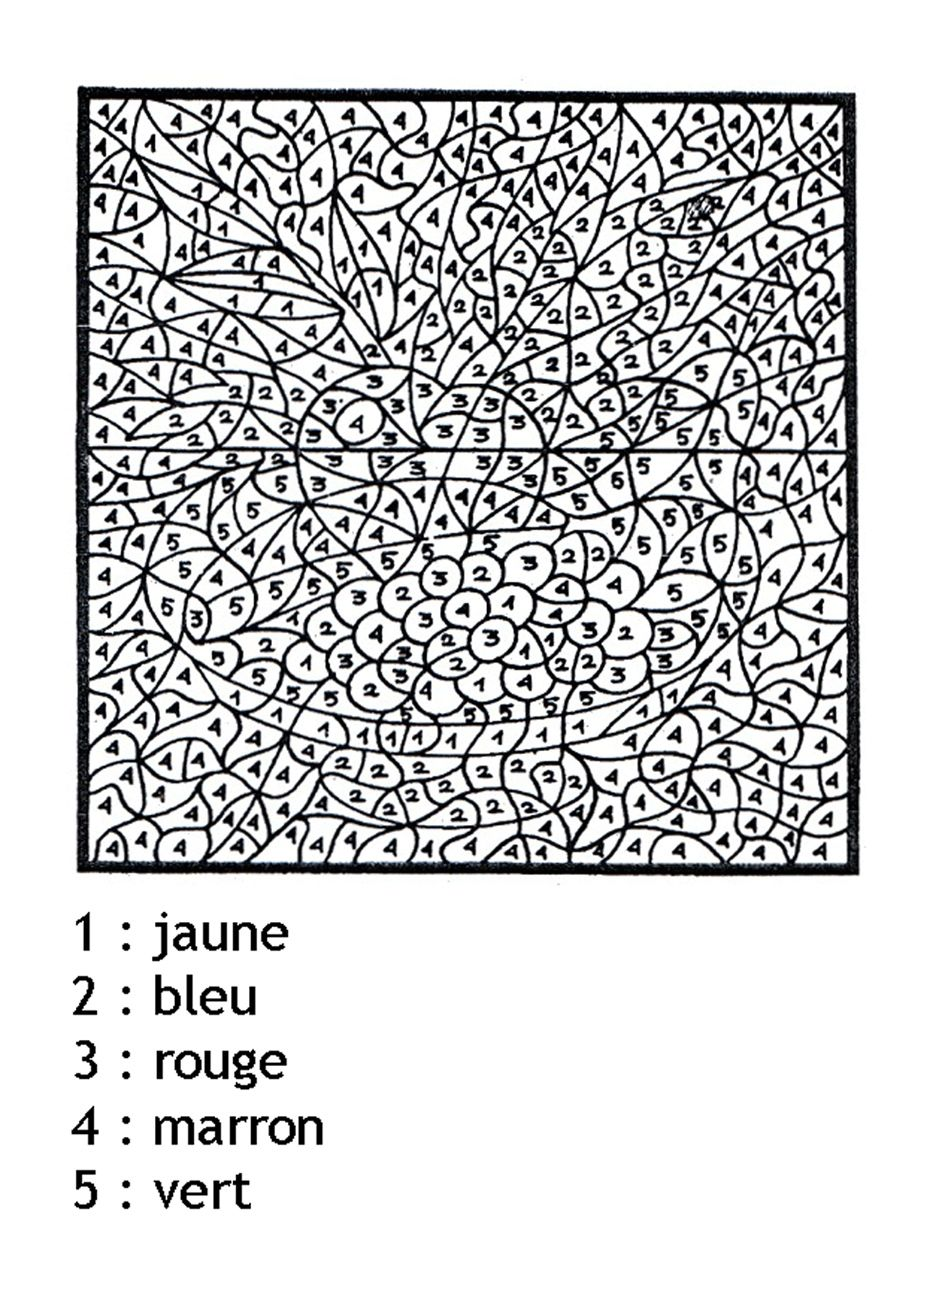 Coloriage magique a imprimer mystere chiffres kolorowanki antystresowe color by numbers - Coloriage magique a imprimer ...